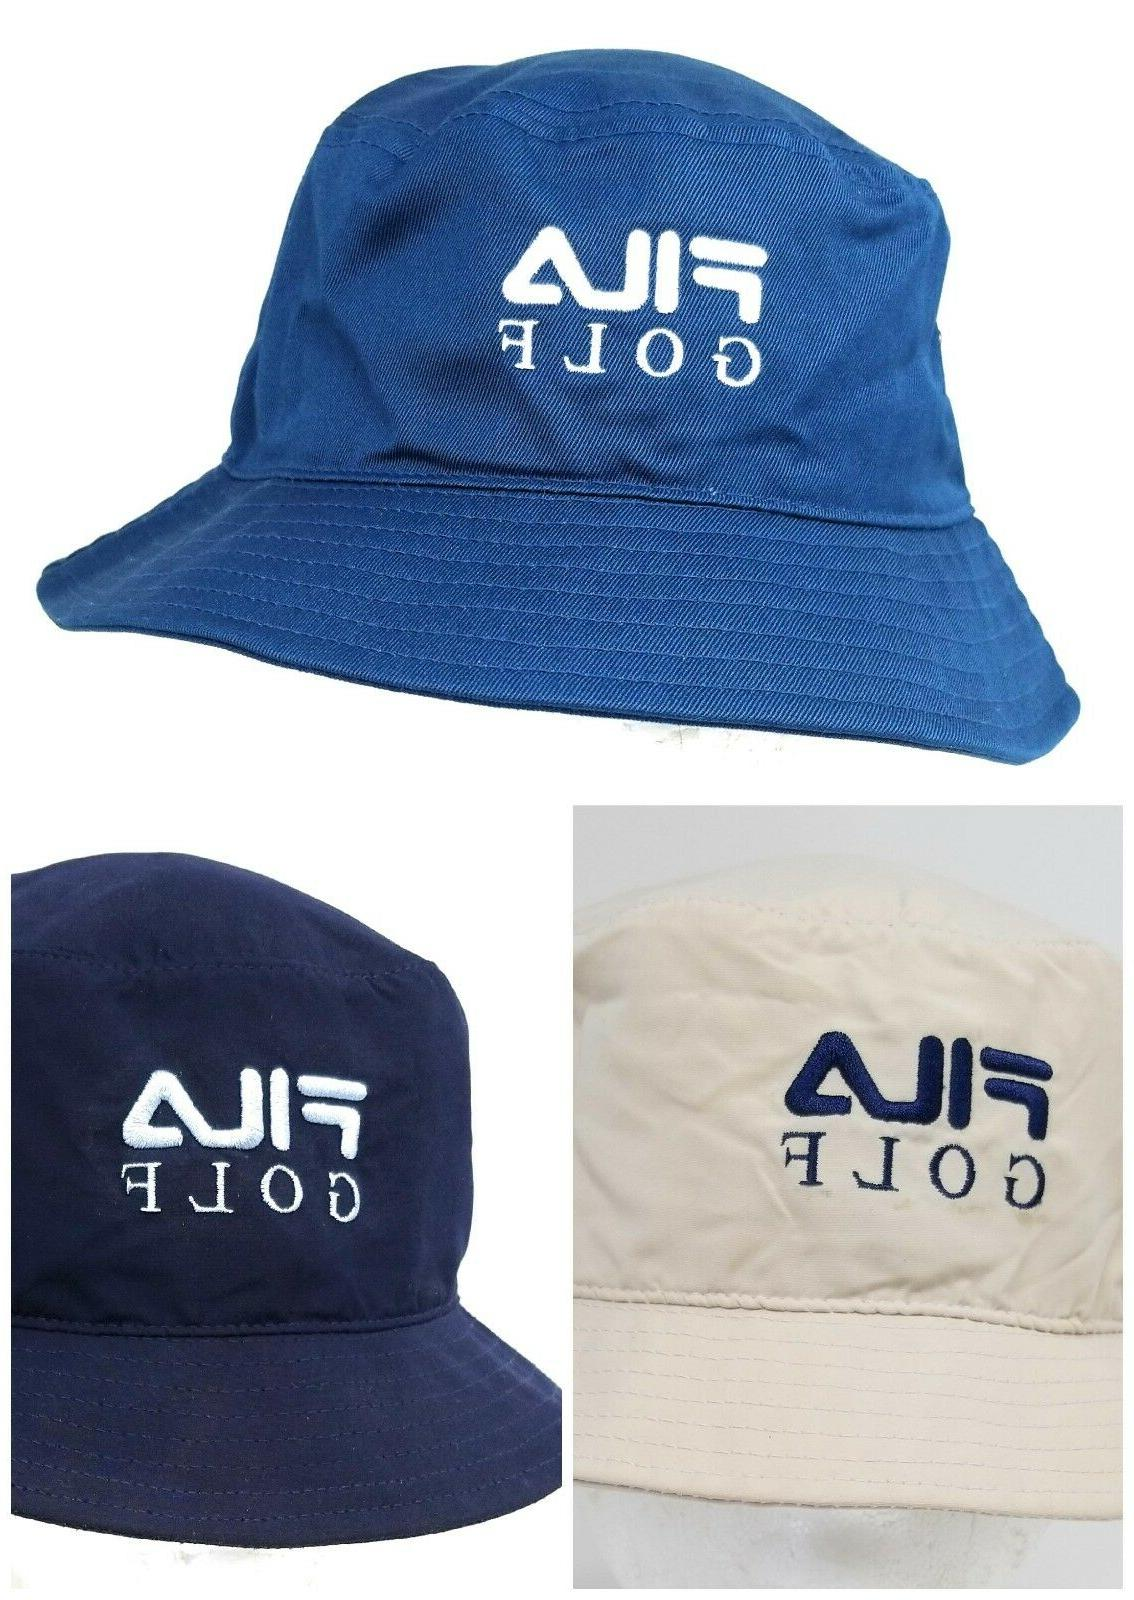 FILA Golf Sun Protection Bucket Hats